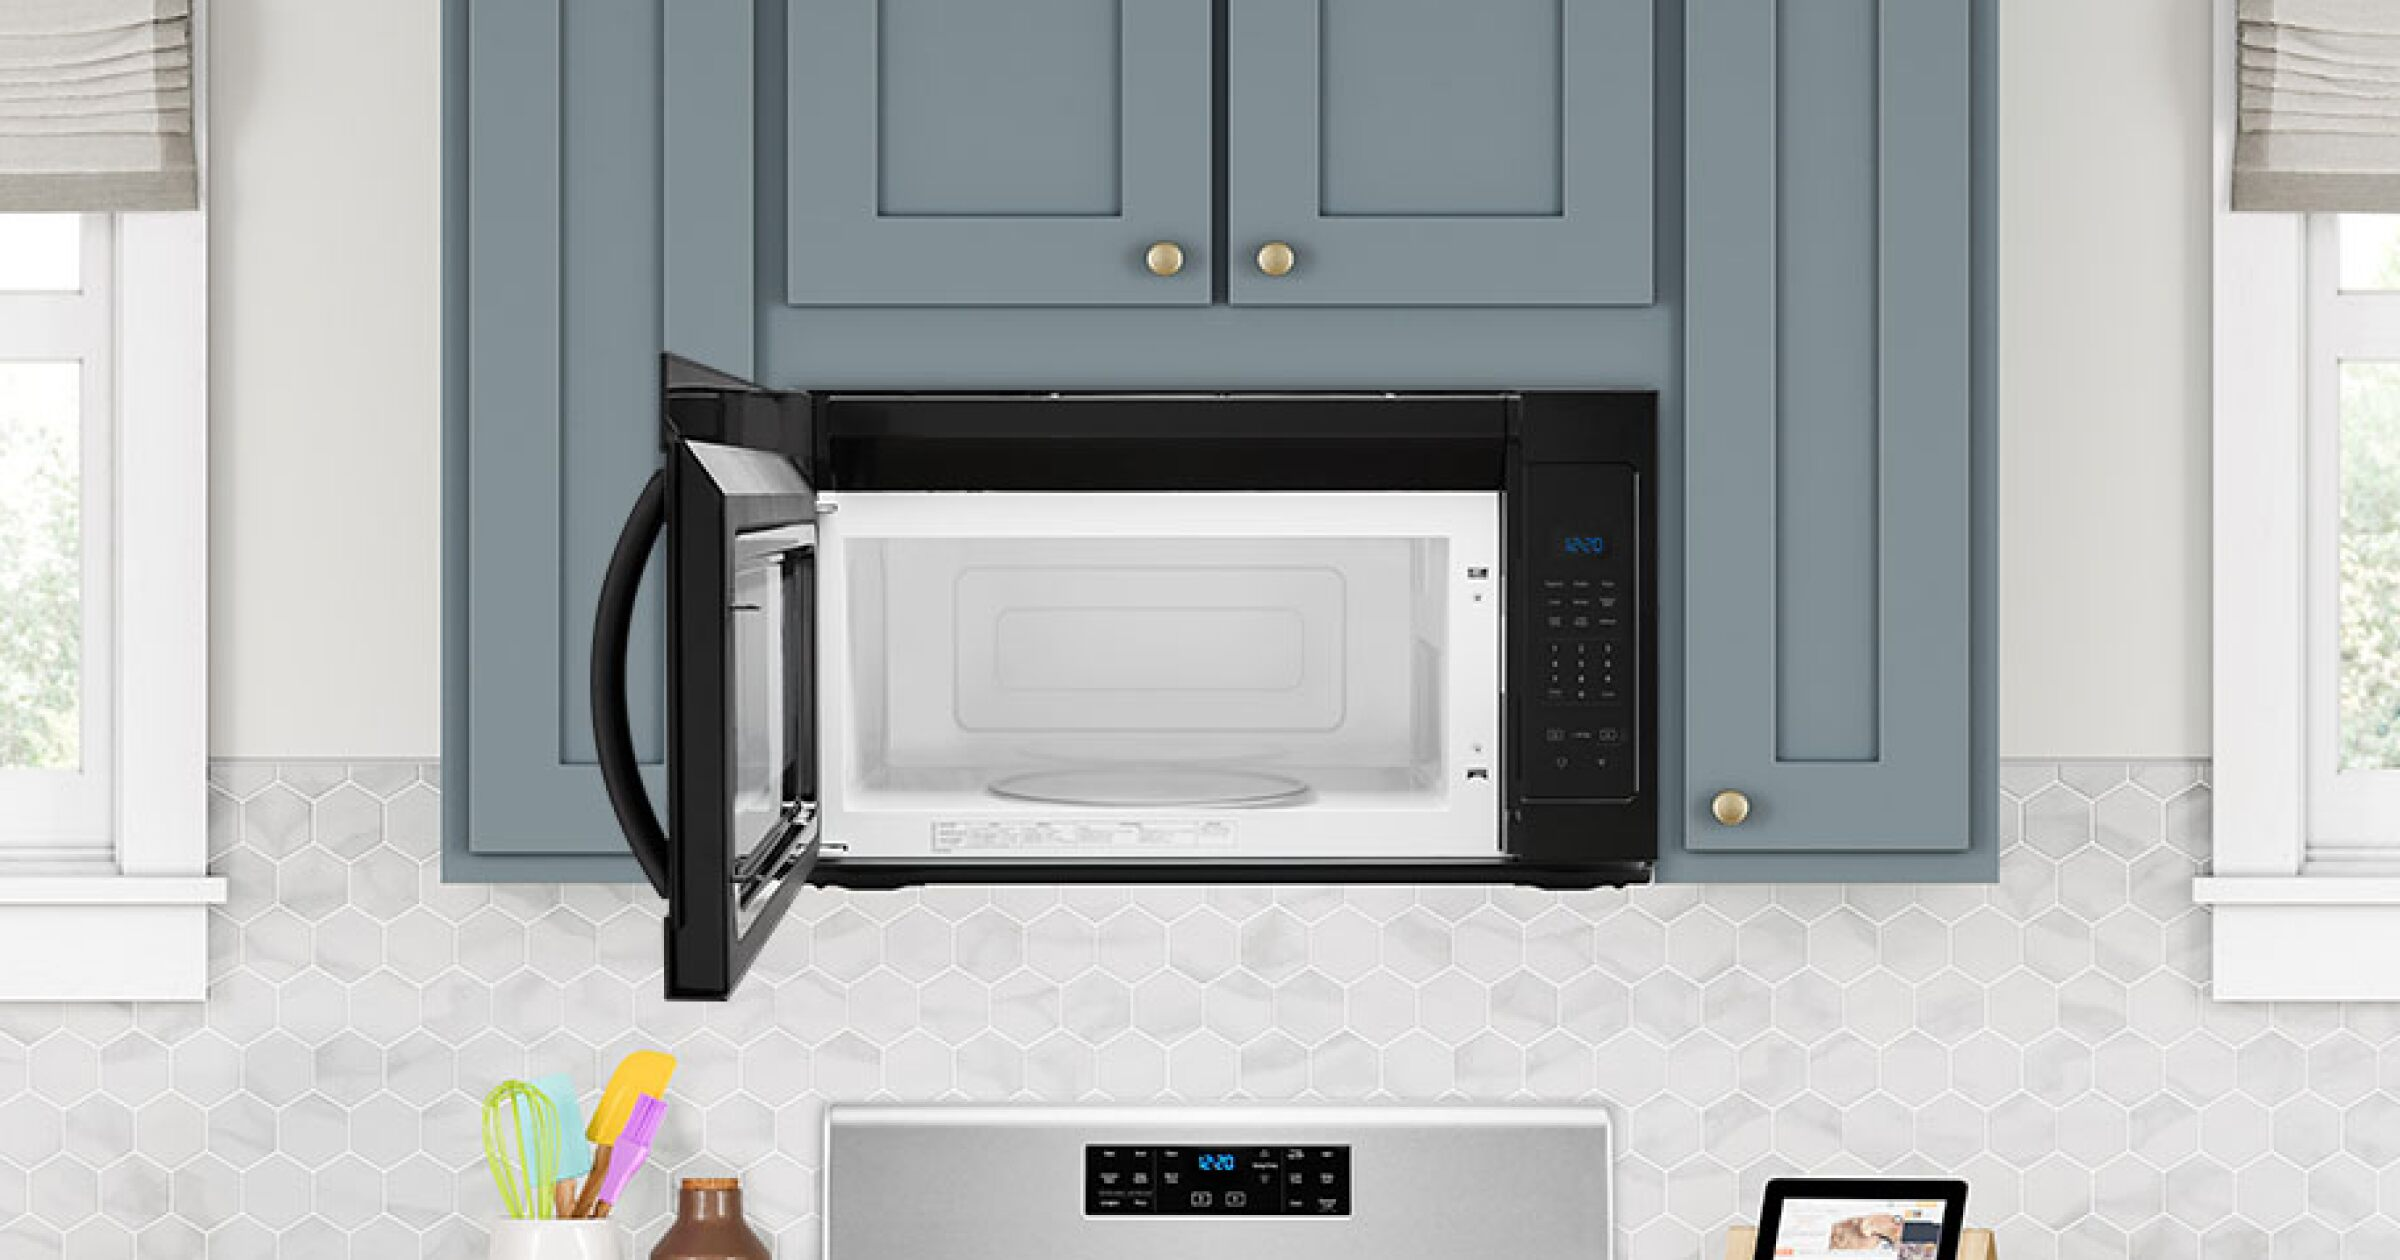 How To Clean A Microwave Inside And Out